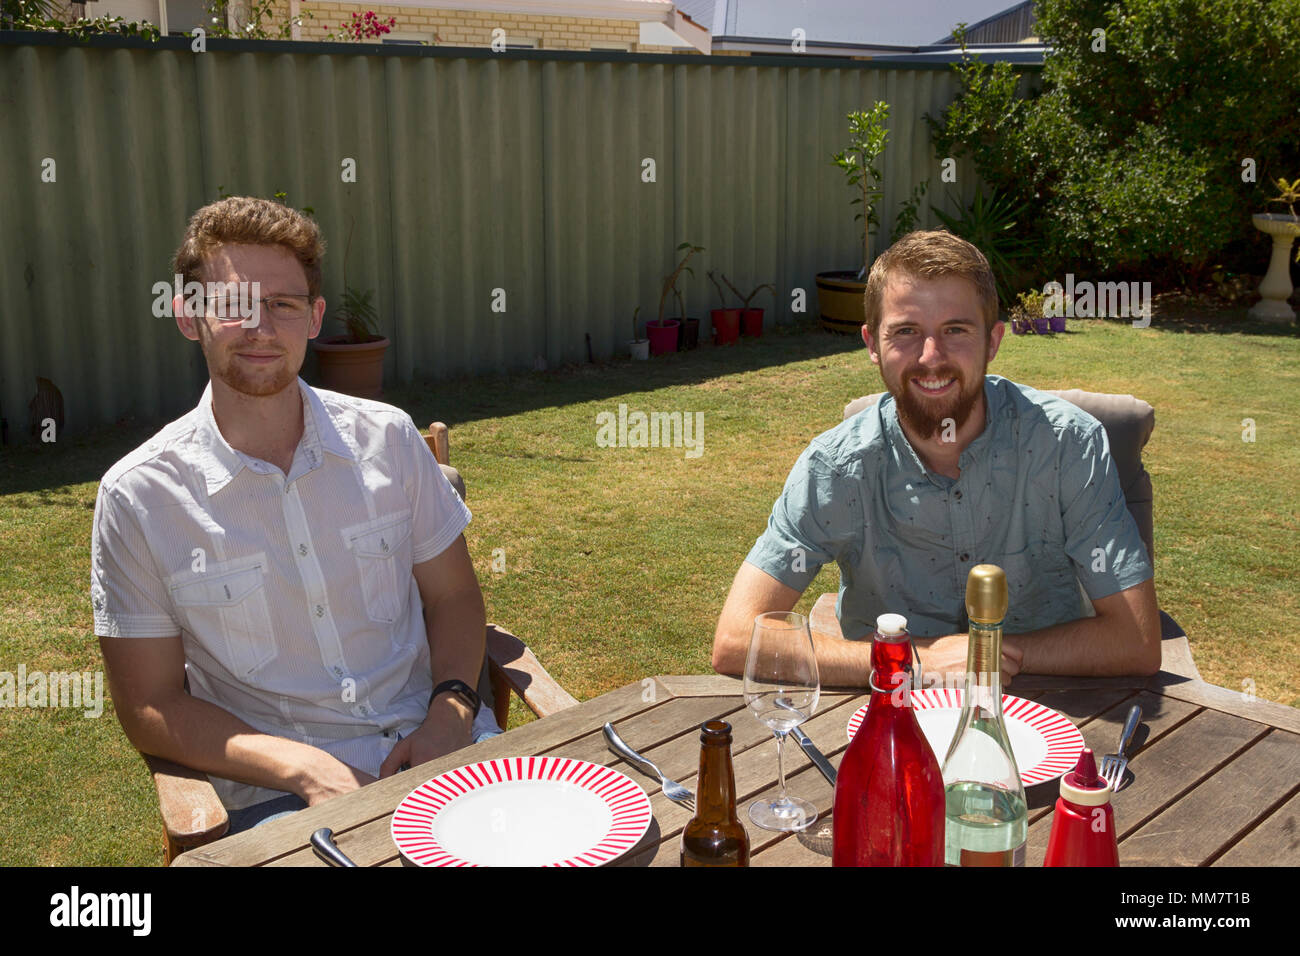 Two people at a home event, waiting for food. - Stock Image